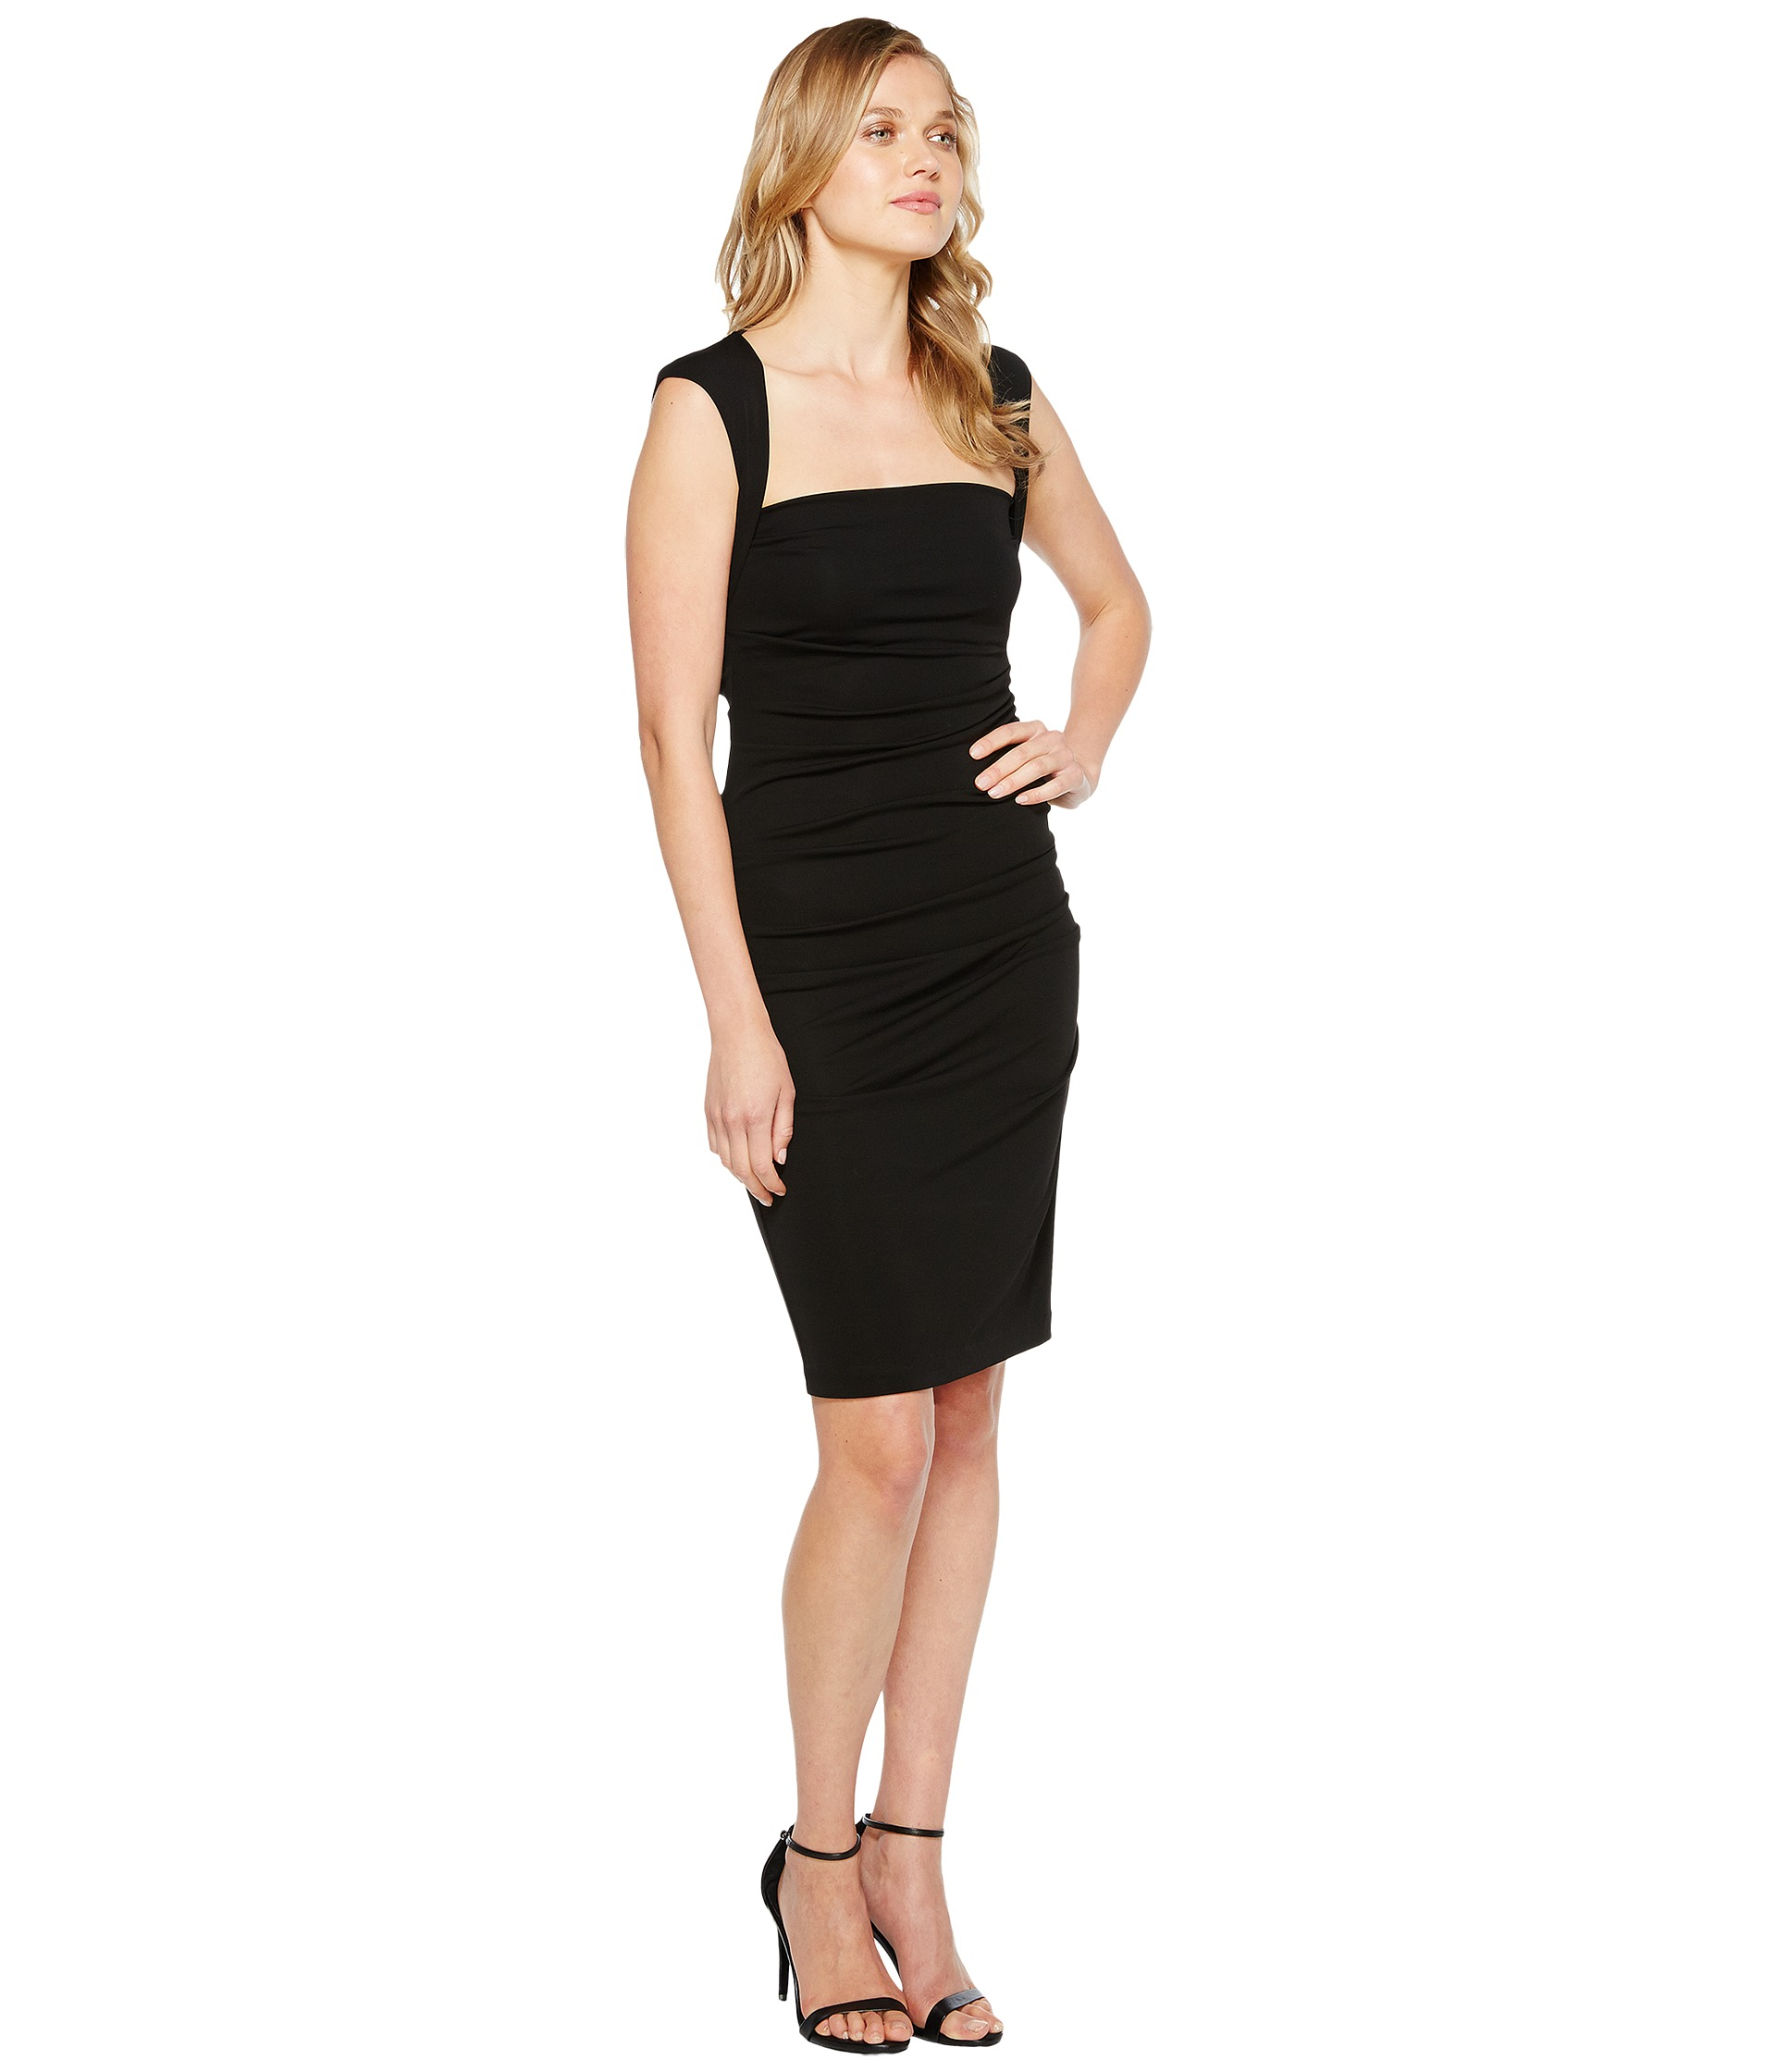 Nicole Miller Sleeveless Jersey Tuck Dress - Zappos.com Free ...